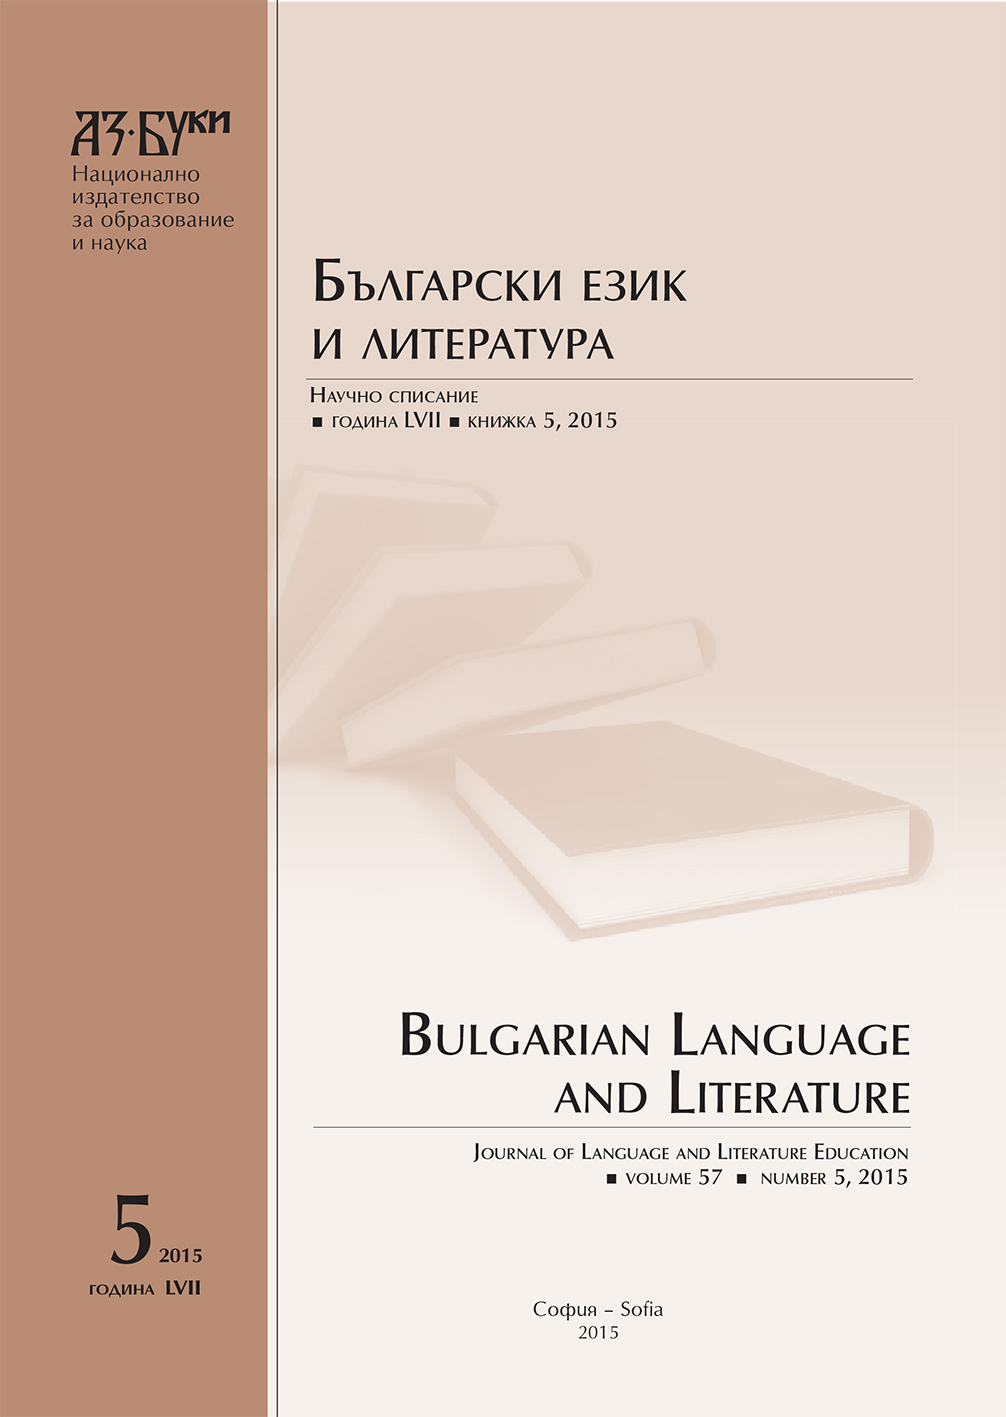 Theoretical and Applied Aspects of the Rhetorical Approach in School Language Educatio Cover Image